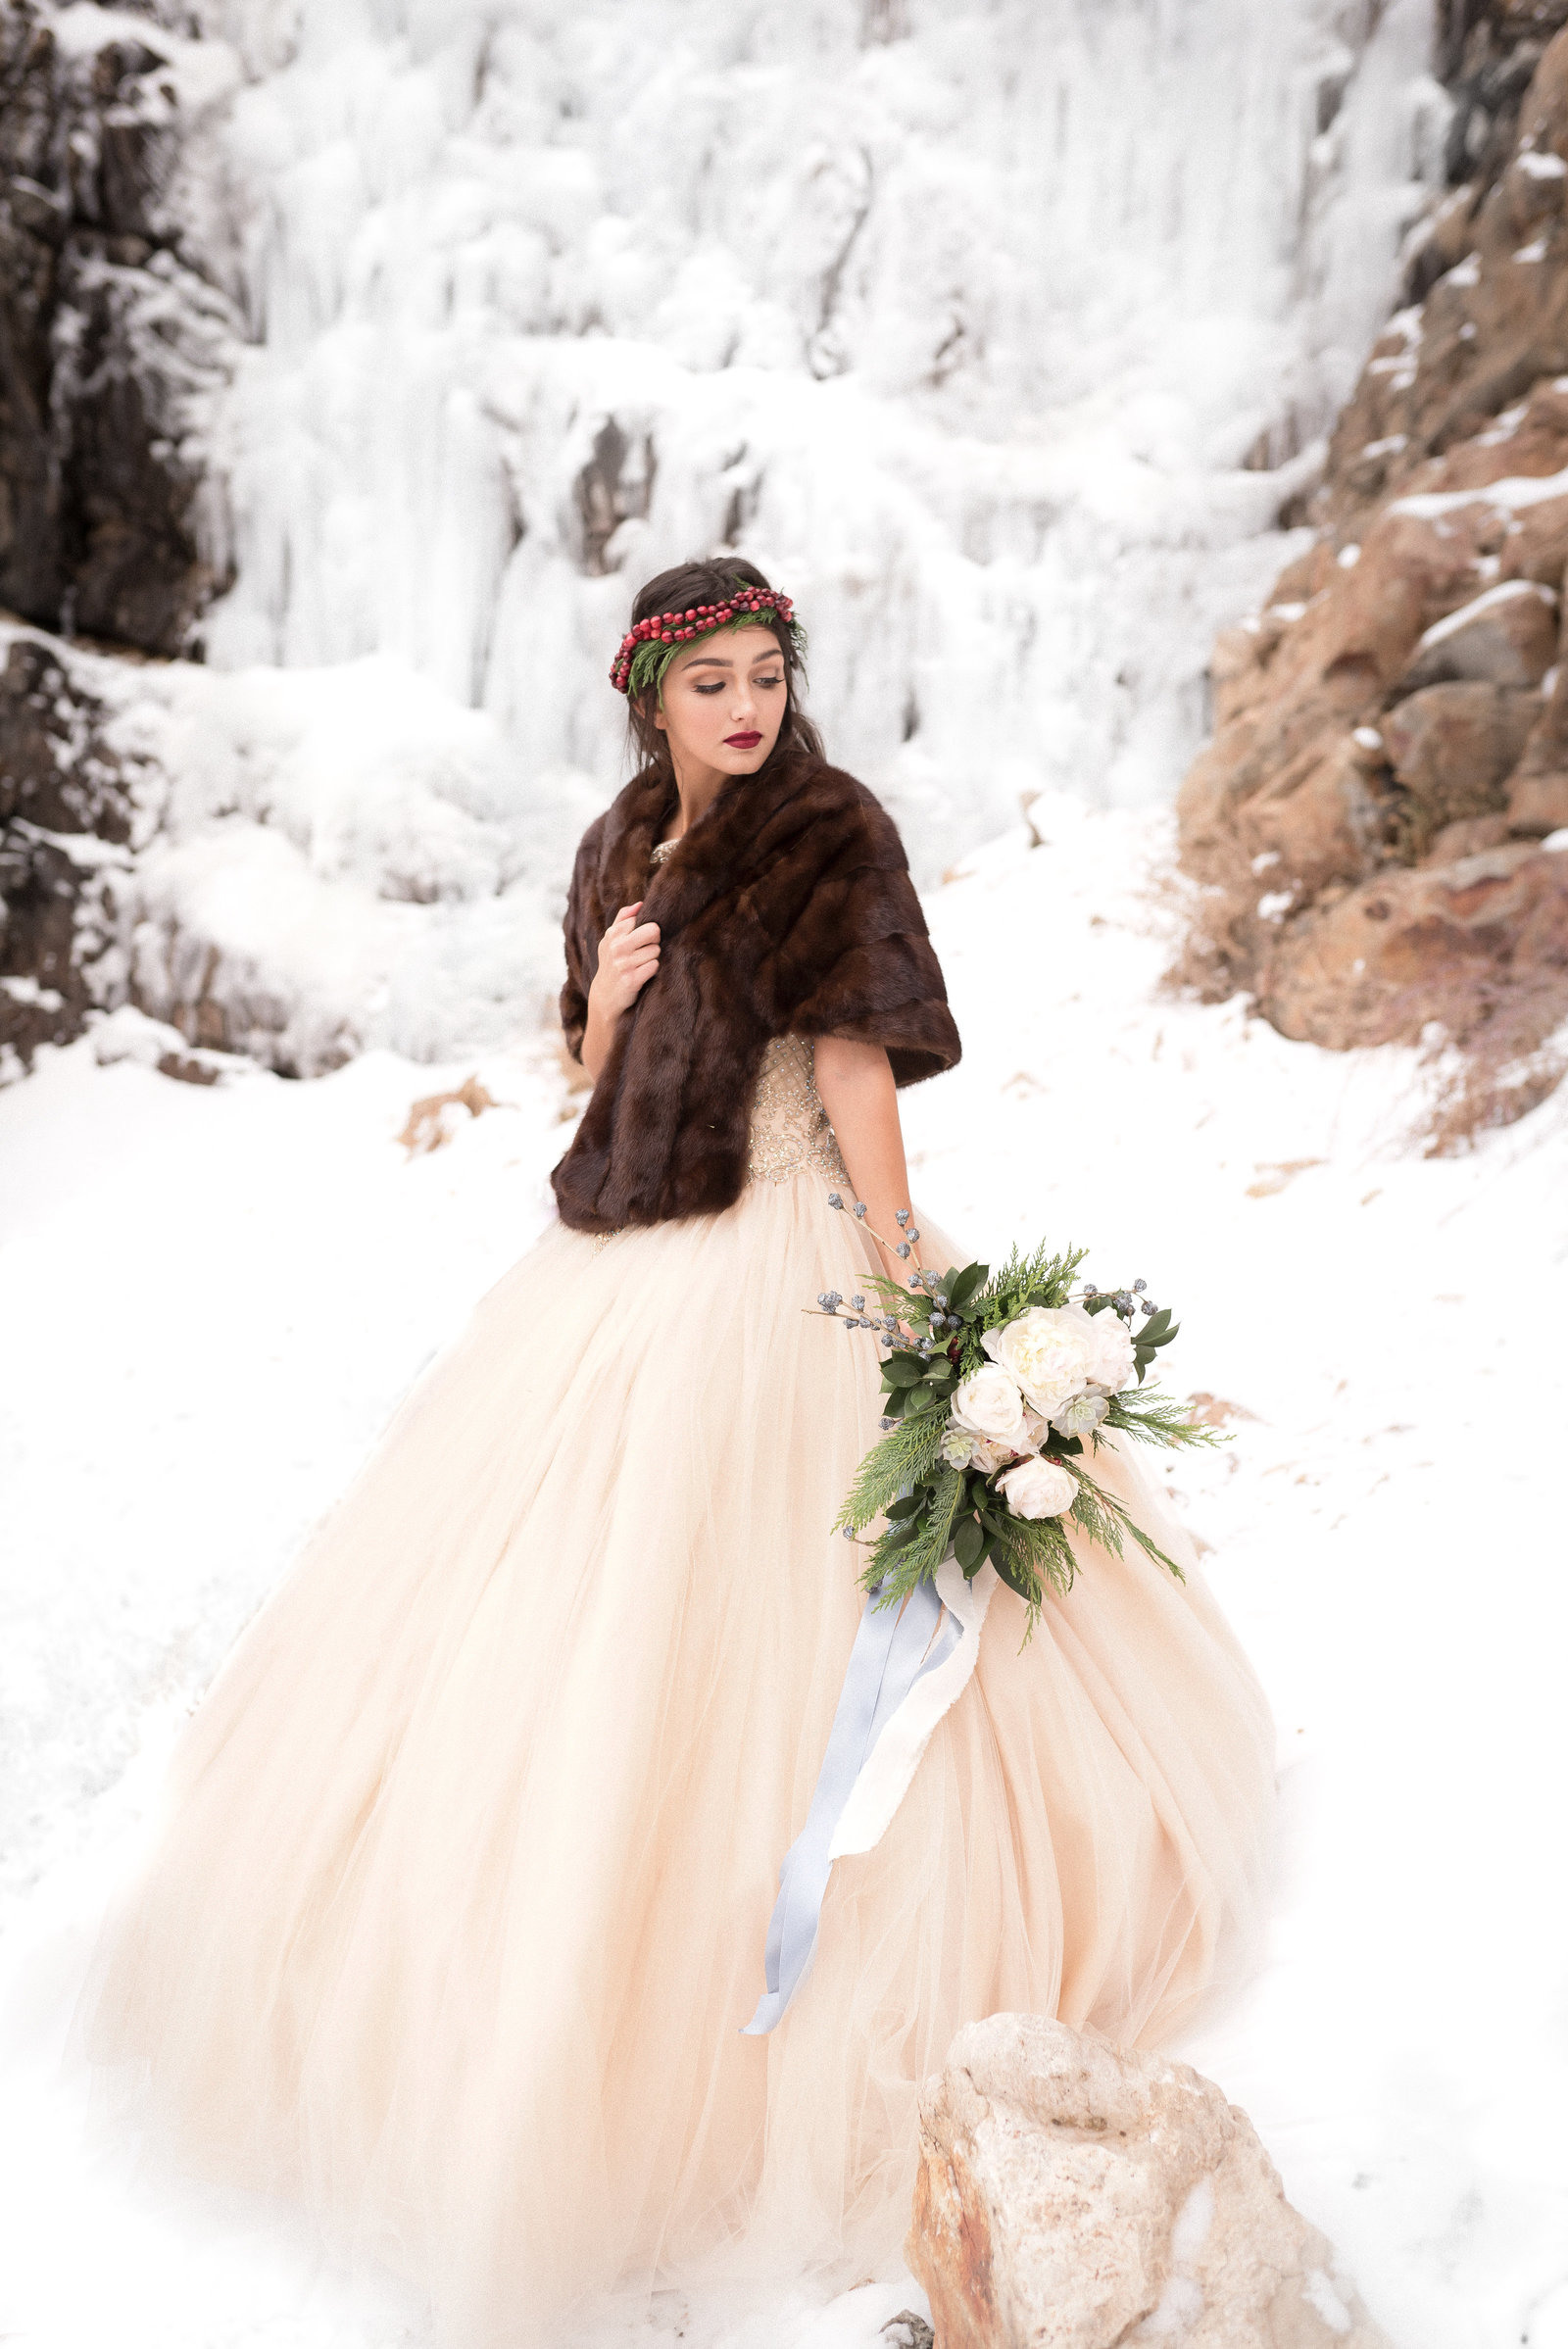 Kamera Lynn Photography Winter Cranberry Floral Crown Velvet Cake Frozen Waterfall Bridal Photoshoot_0013